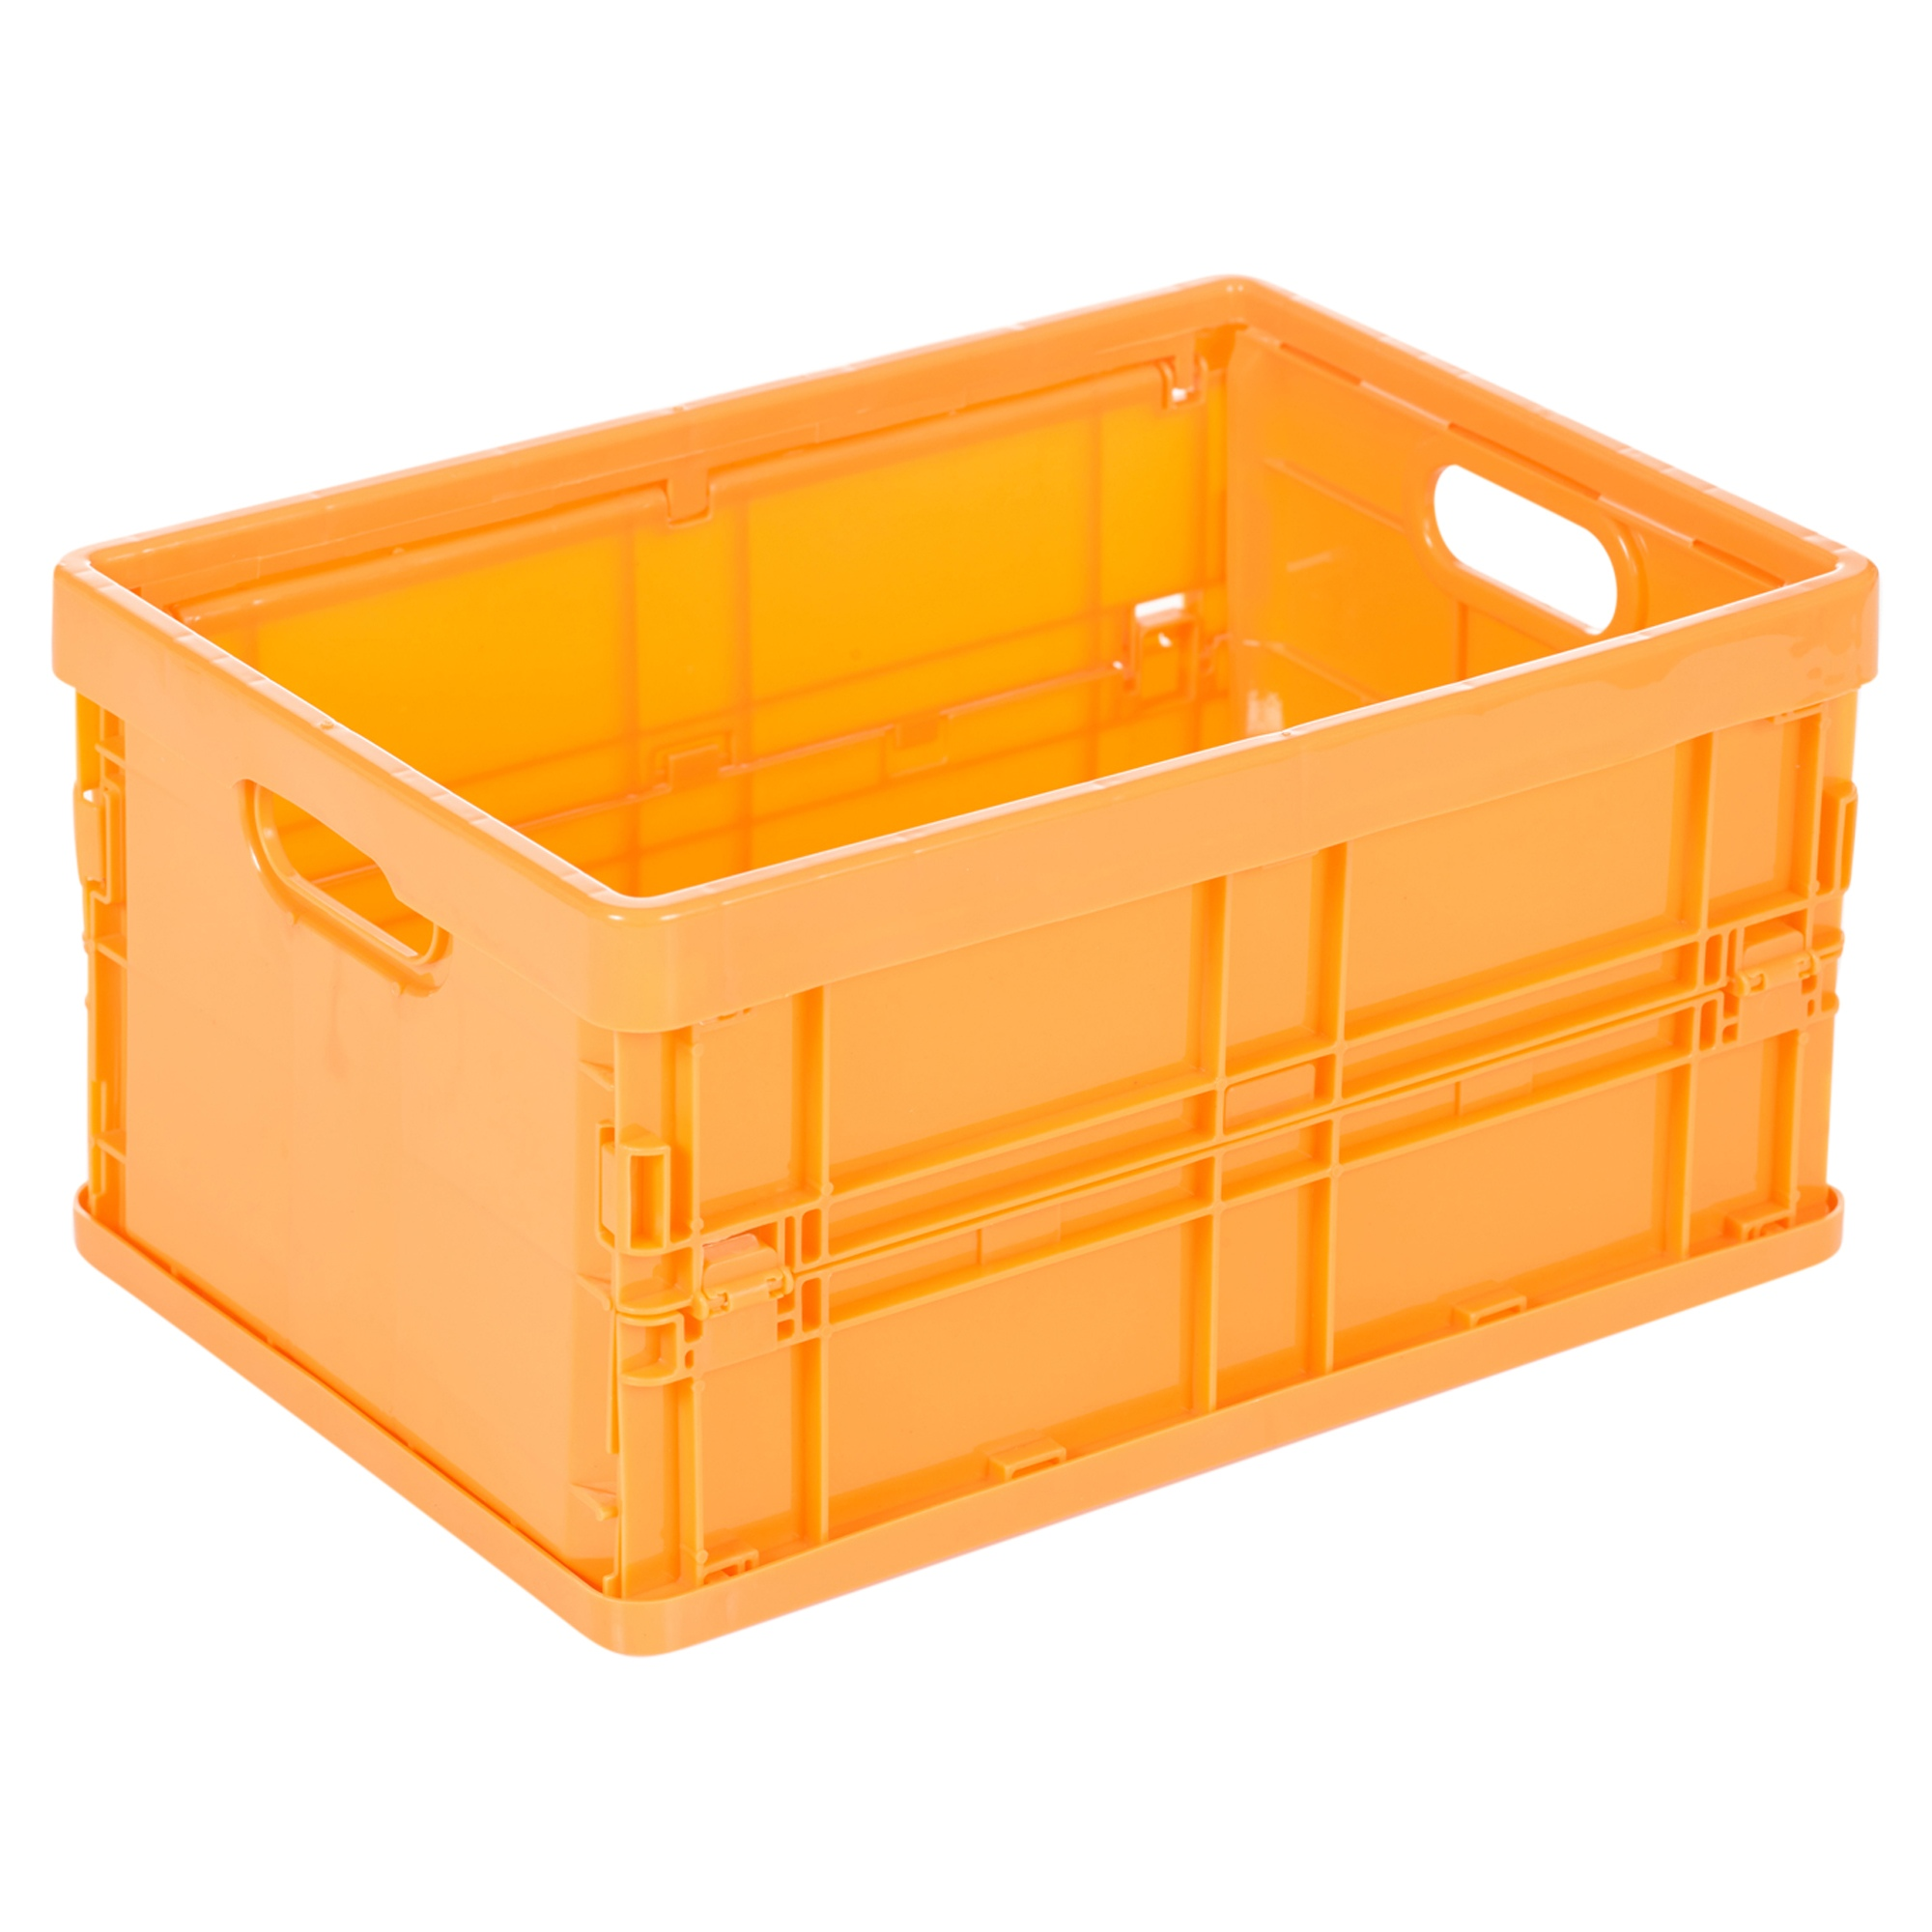 Small Plastic Storage Collapsible Boxes Organiser Sorter